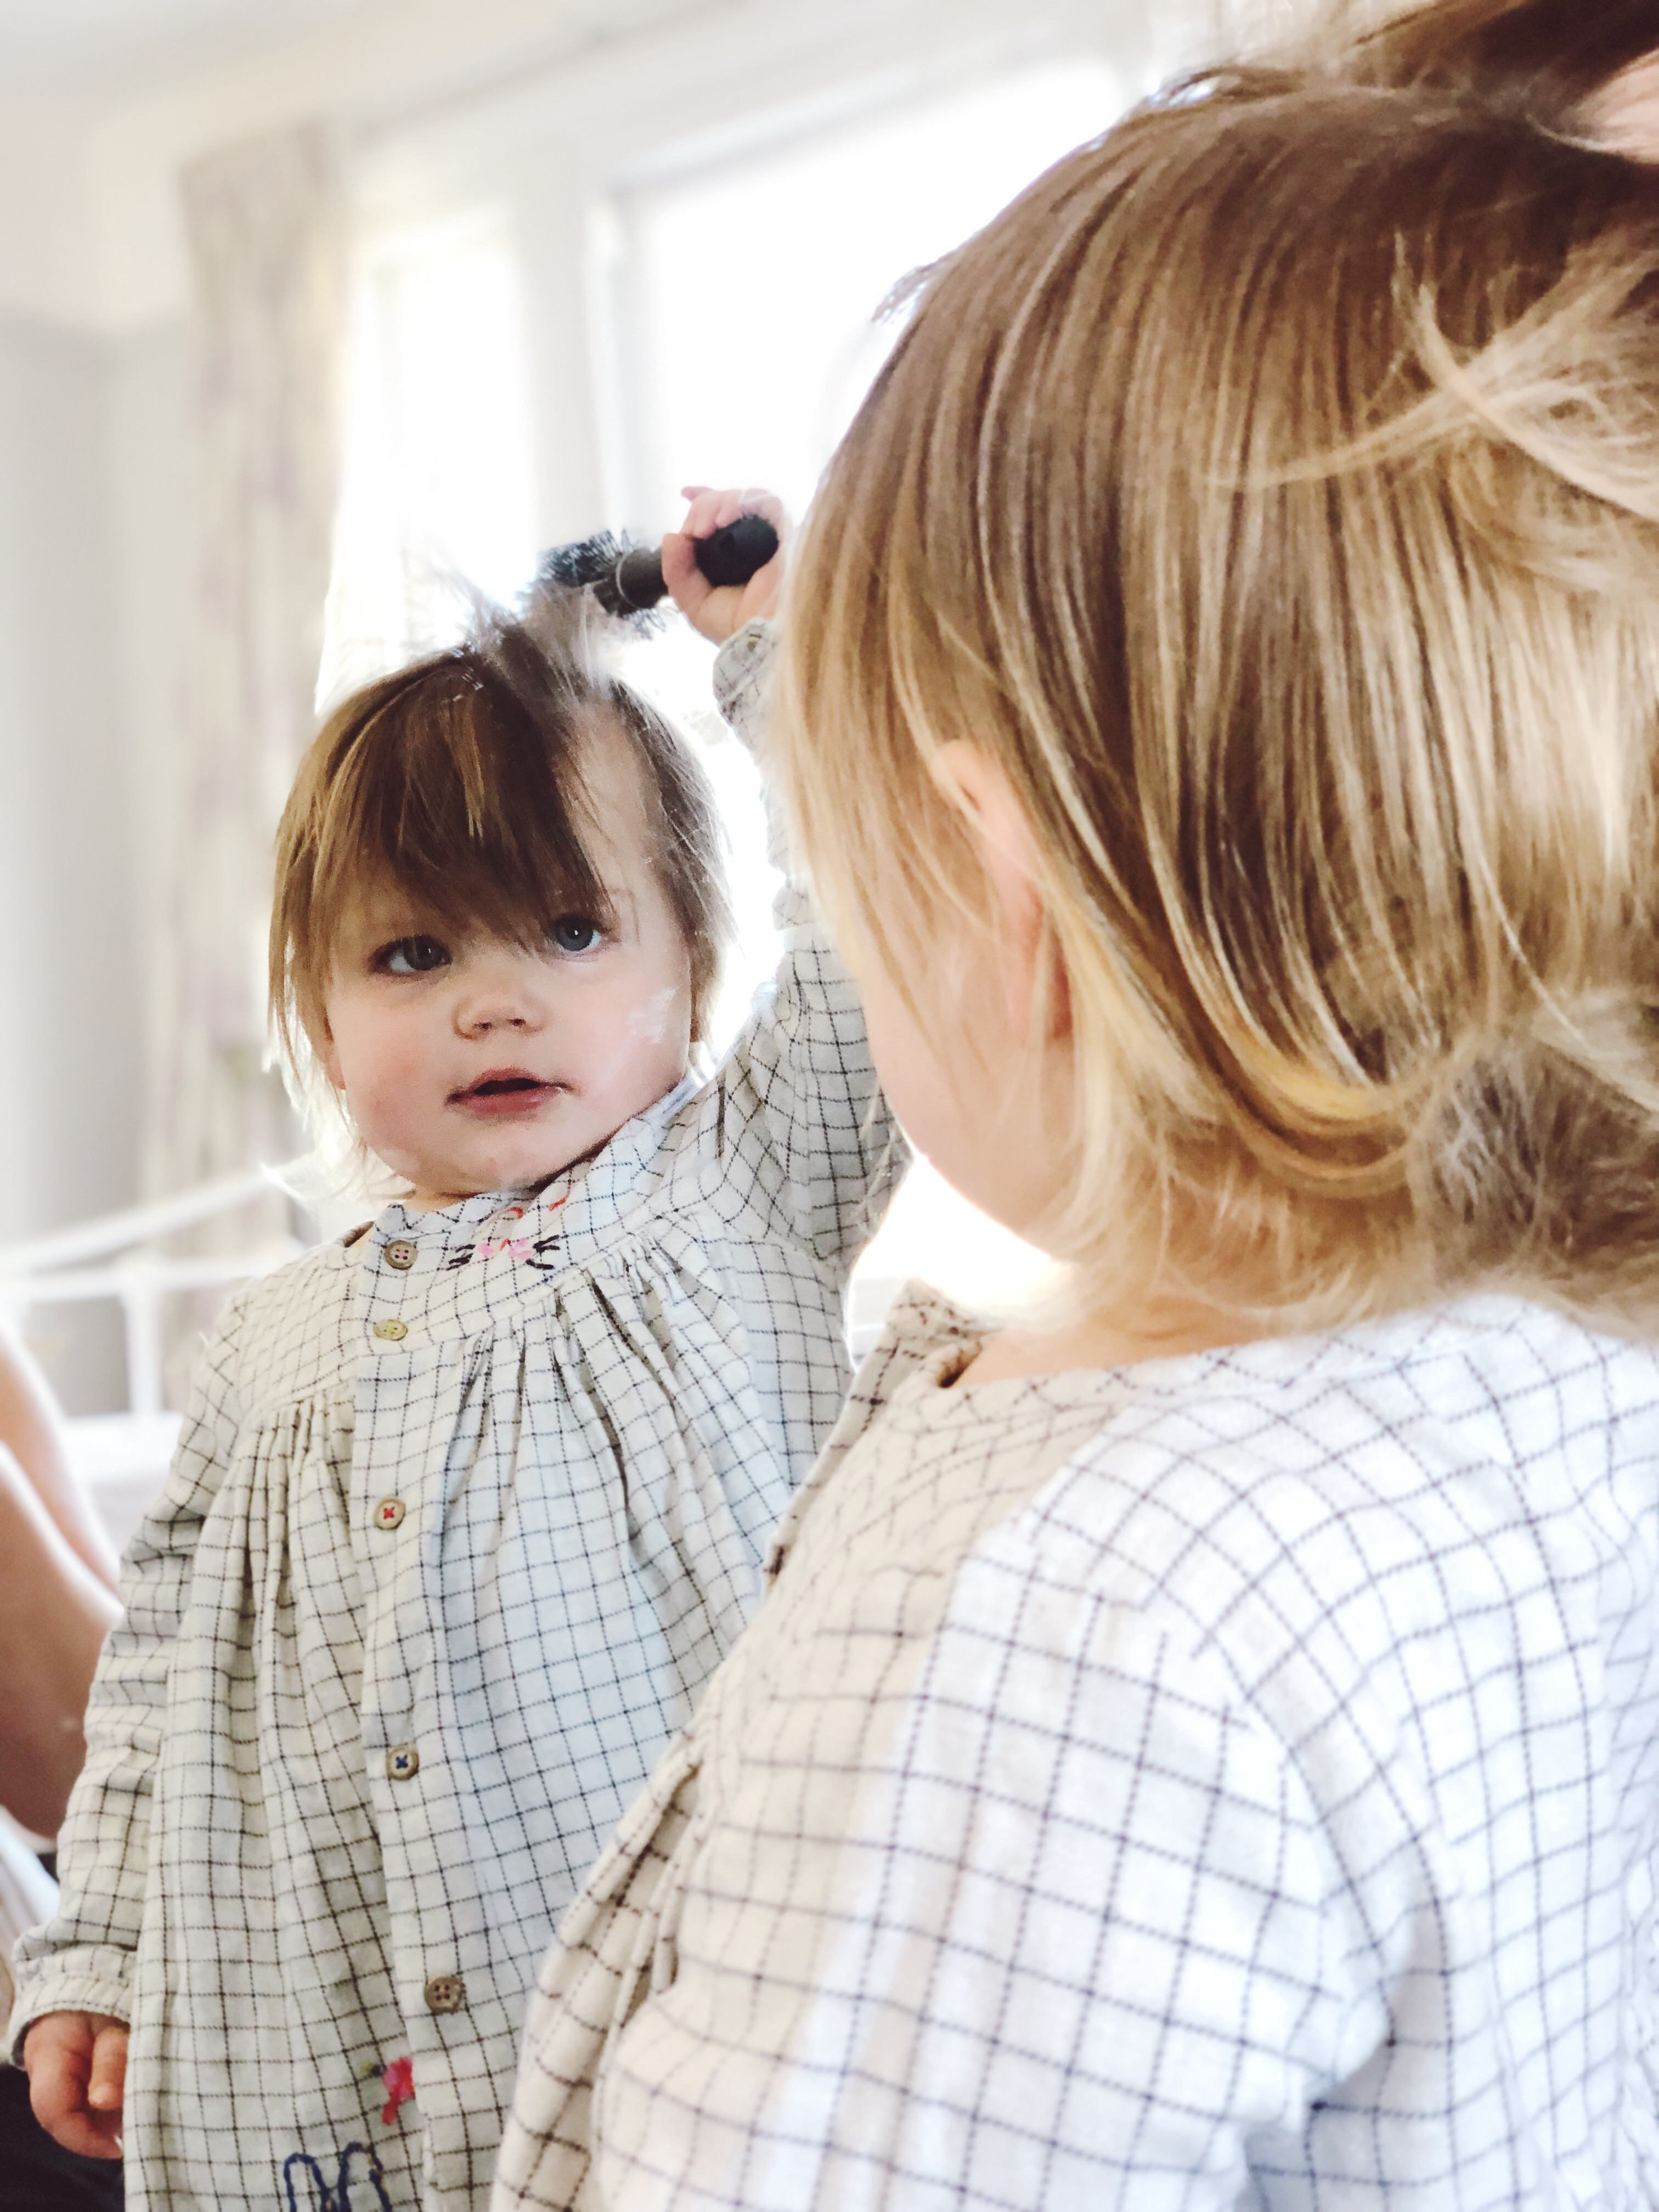 little girl in the mirror